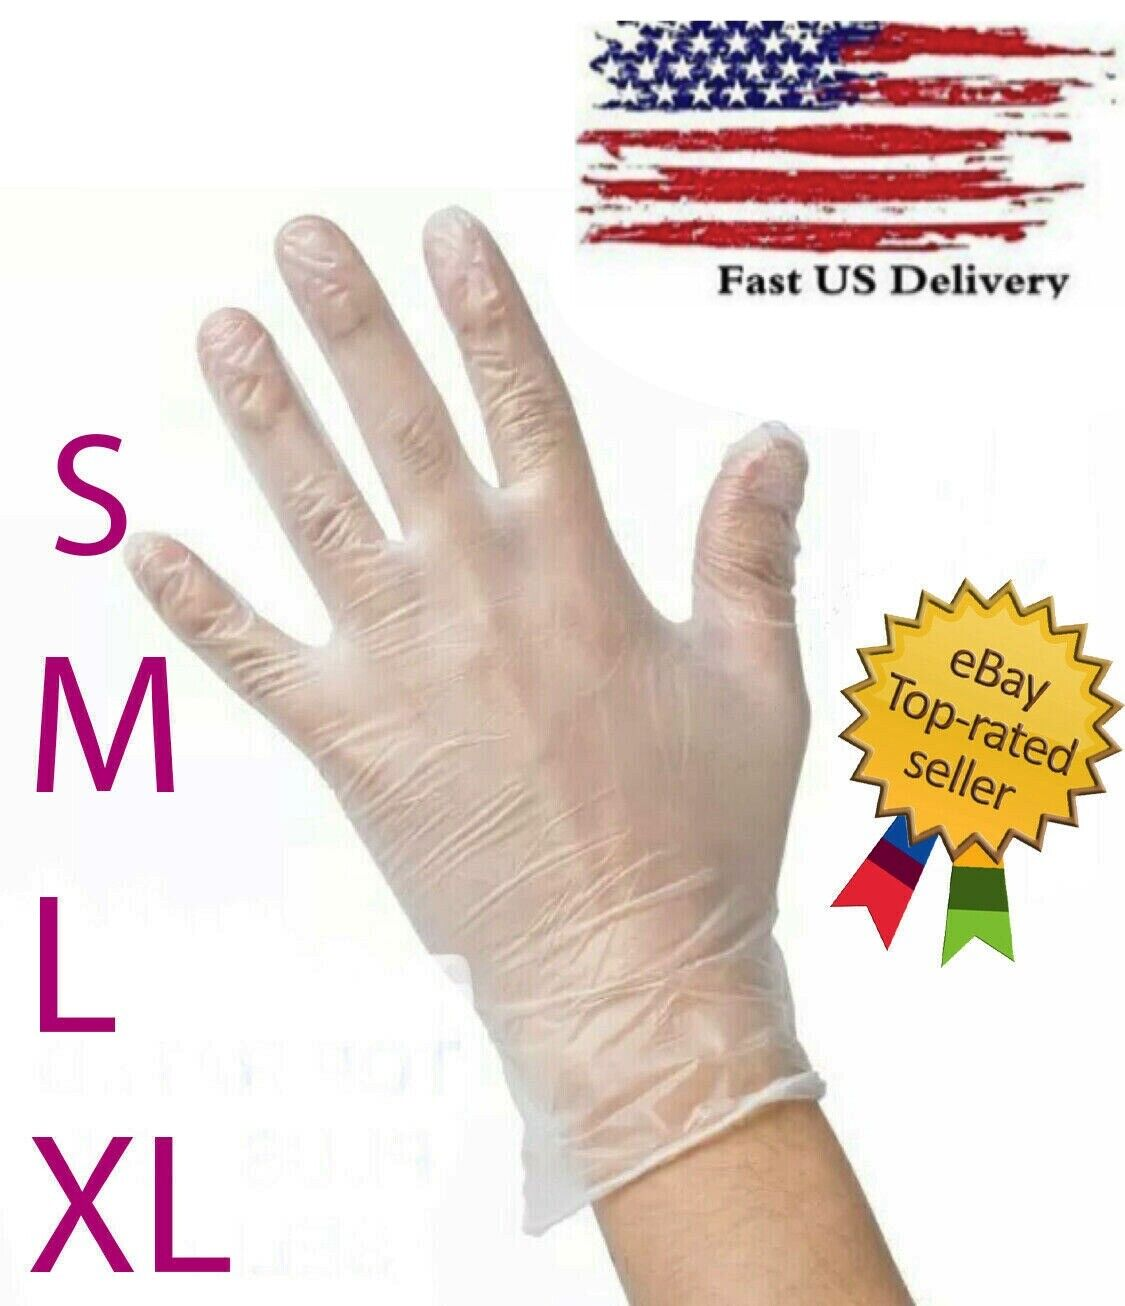 Latex-Free Small Redi Bag 100 Count Powder-Free Disposable Vinyl Gloves